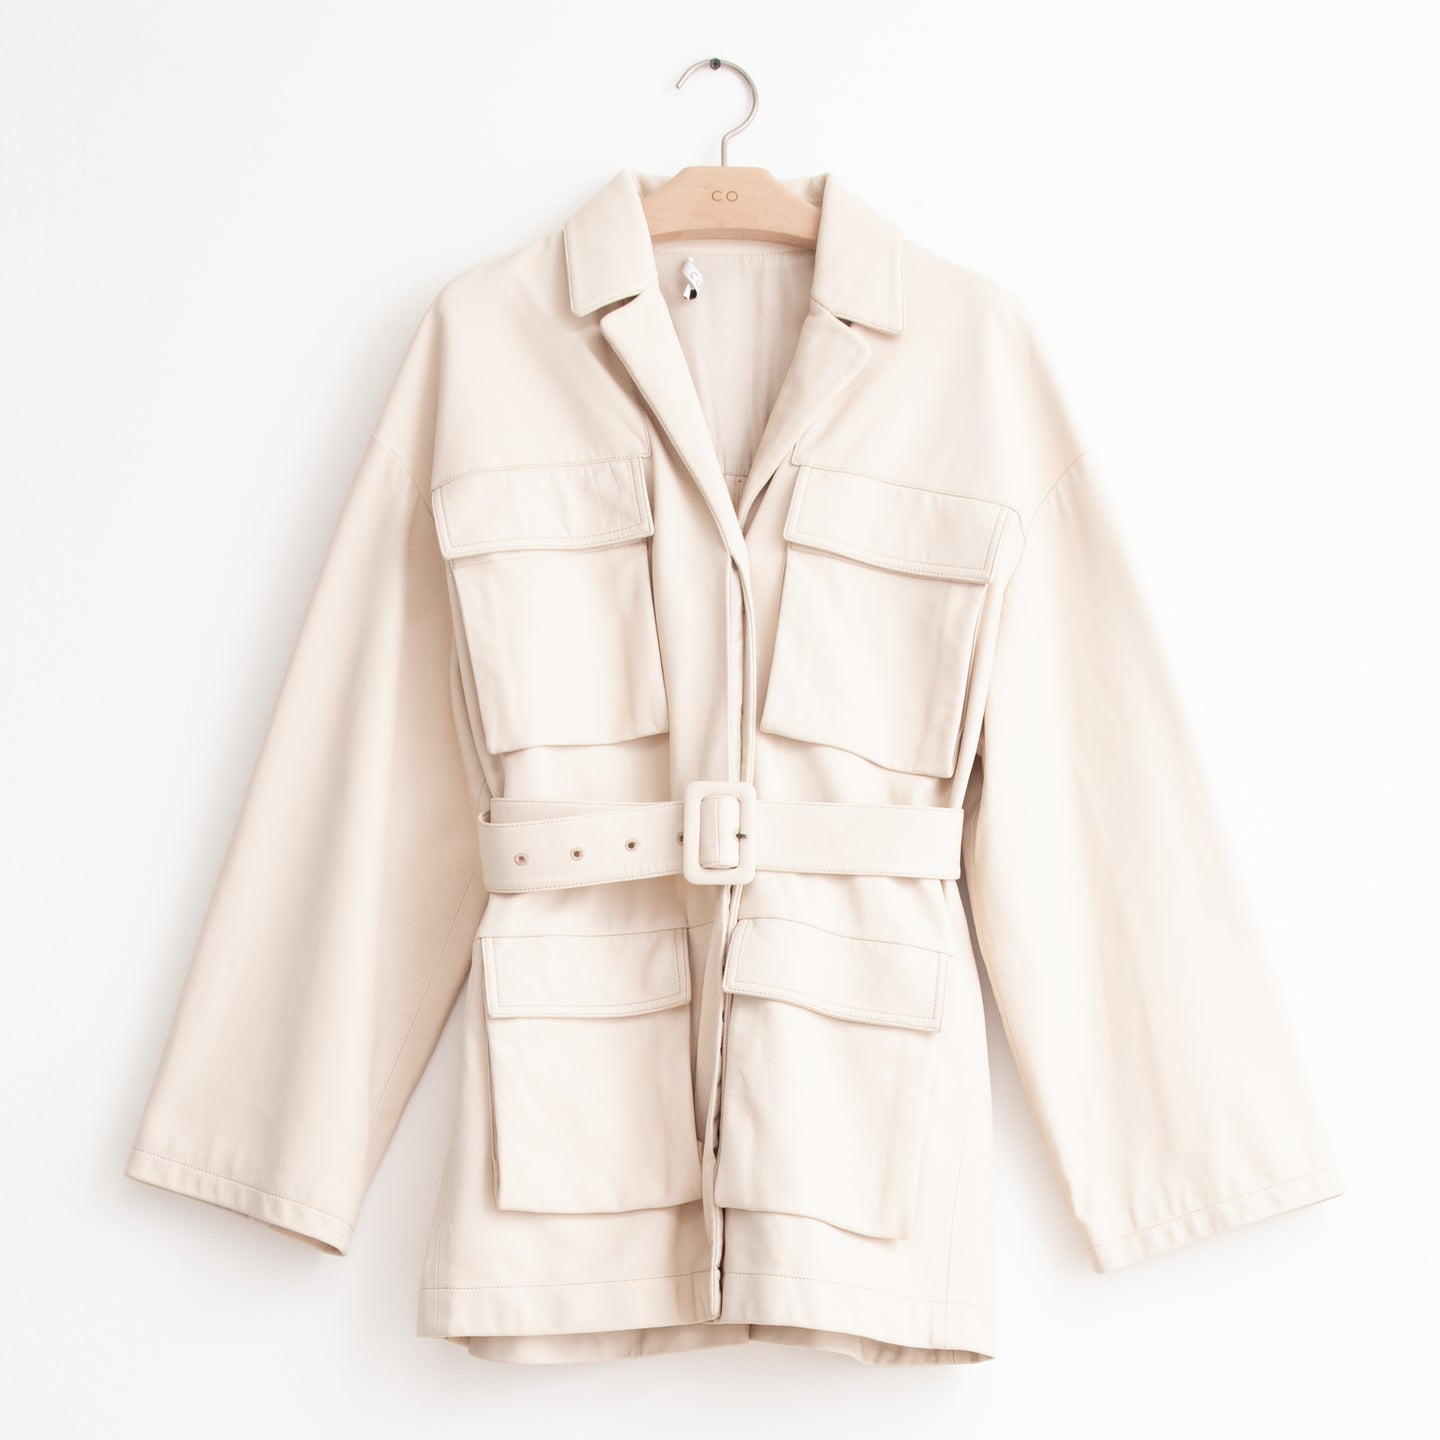 CO - Oversized belted utilitarian jacket with flap pockets in ivory leather